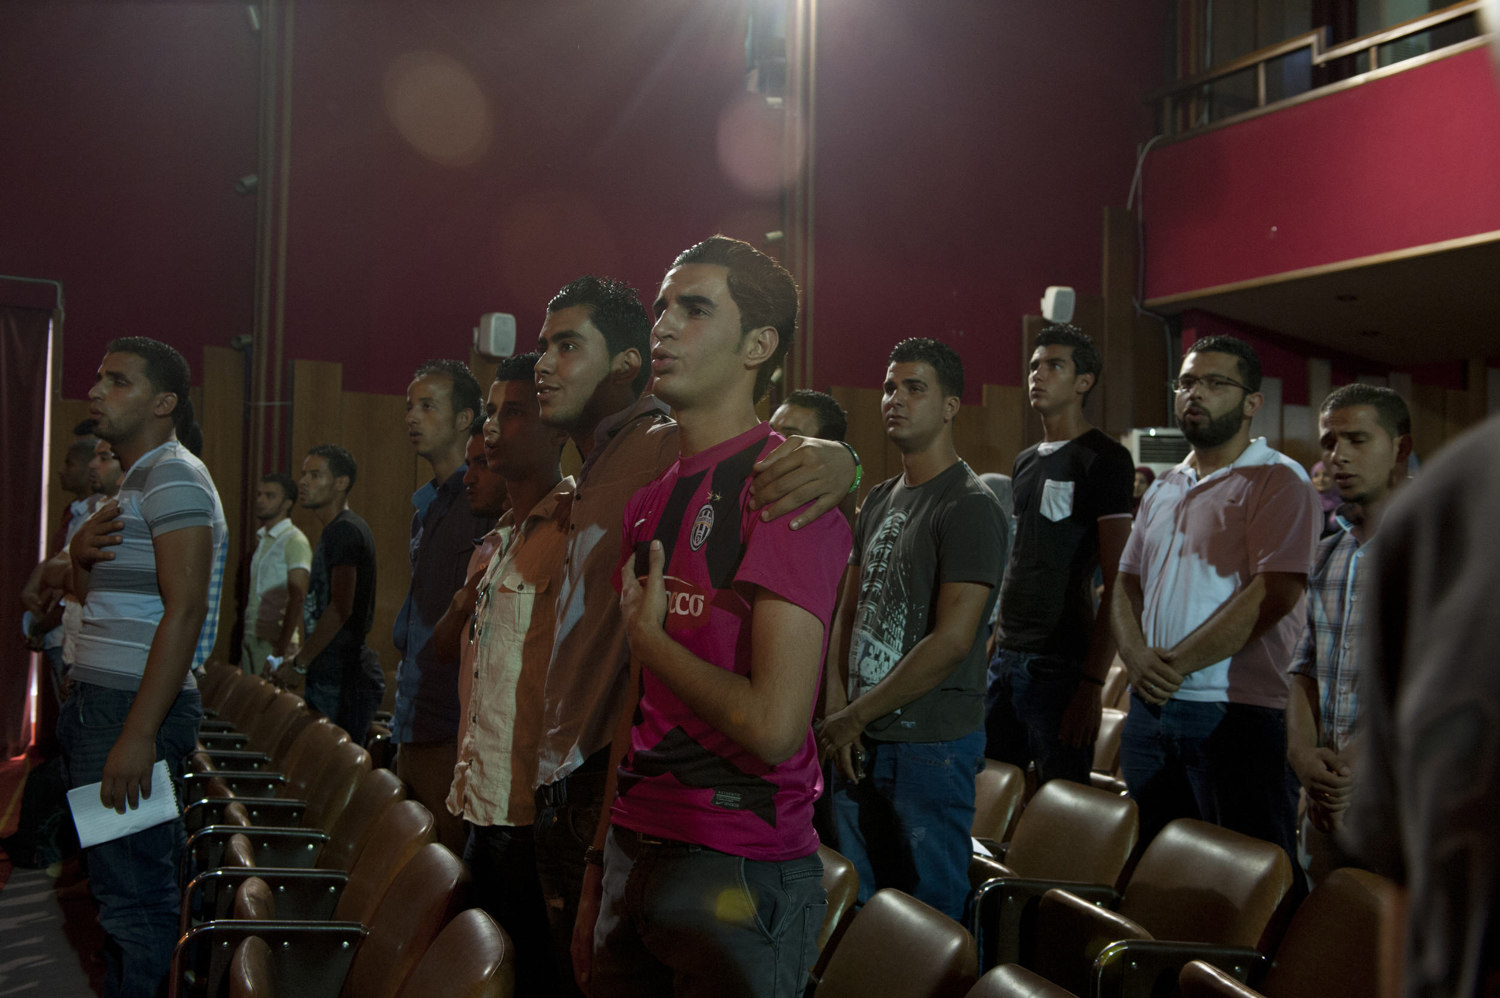 Students at Tripoli University sing the national anthem and attend a meeting of the elected Student Council on July 12th 2012.